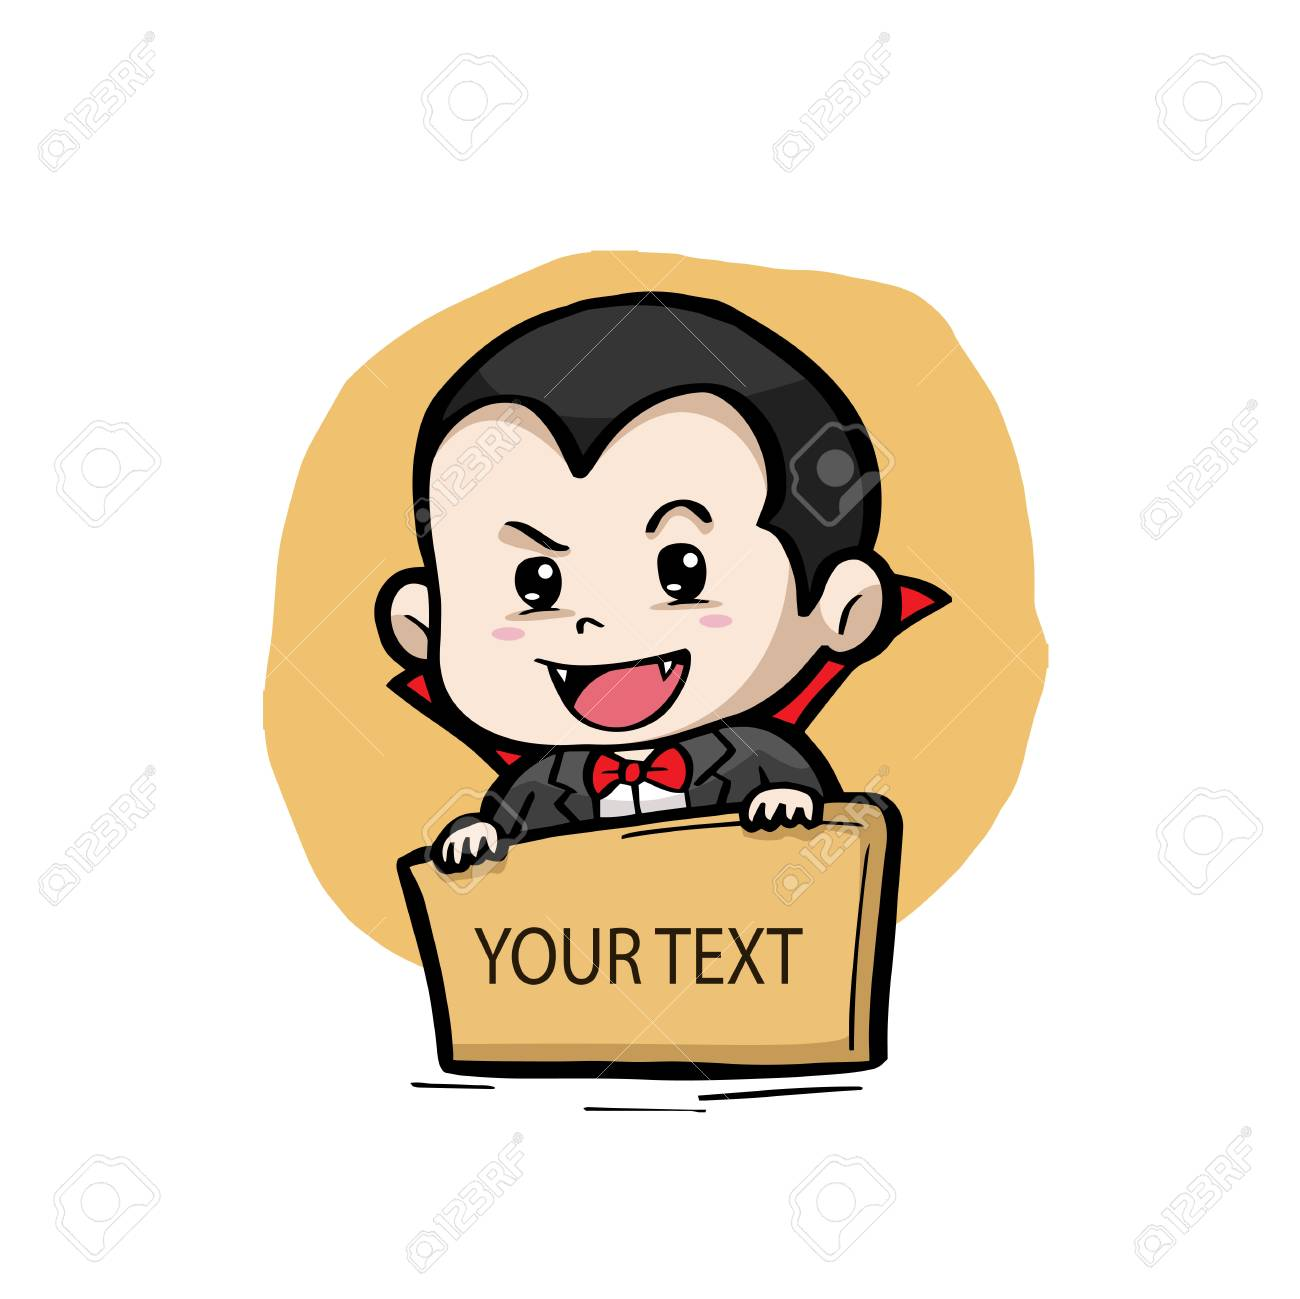 Dracula with a text board halloween theme vector illustration